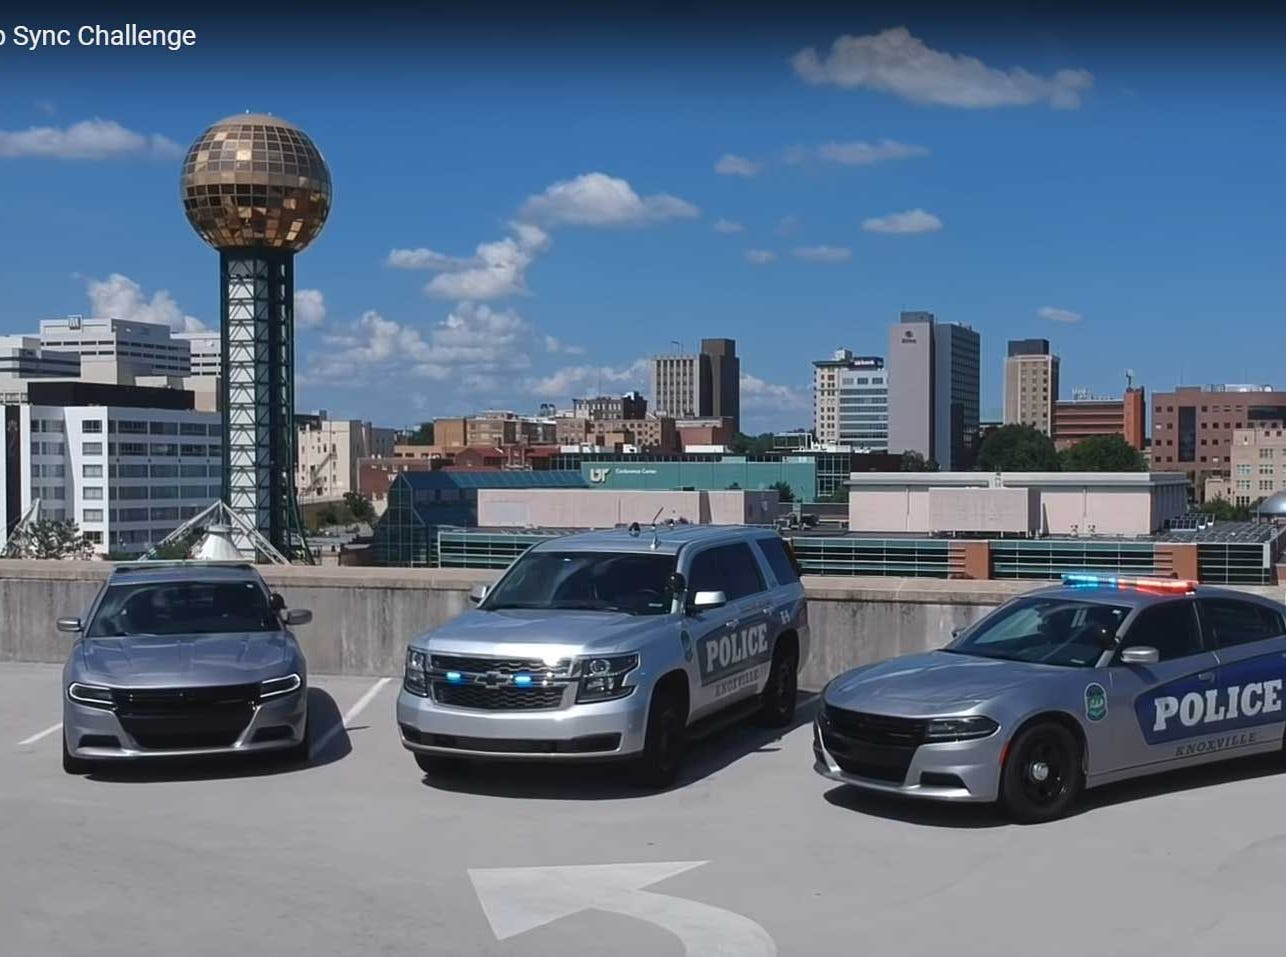 The Knoxville Police Department was challenged by K9s4Cops.org and Cleveland TN Police Department to join the national police #lipsyncchallenge.  Here is a screenshot of the department video. It's on YouTube here: https://youtu.be/ela-R_QJdkk